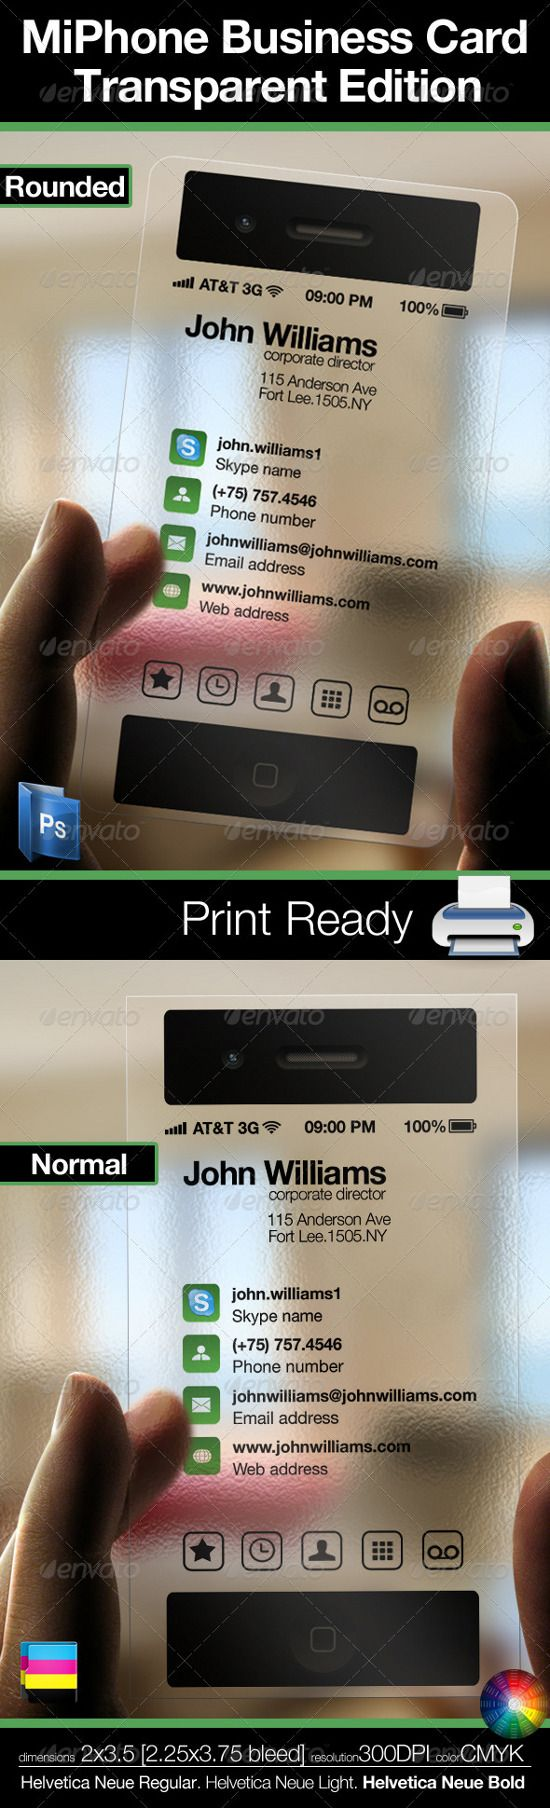 Mobile (Cell Phone) business card, transparent